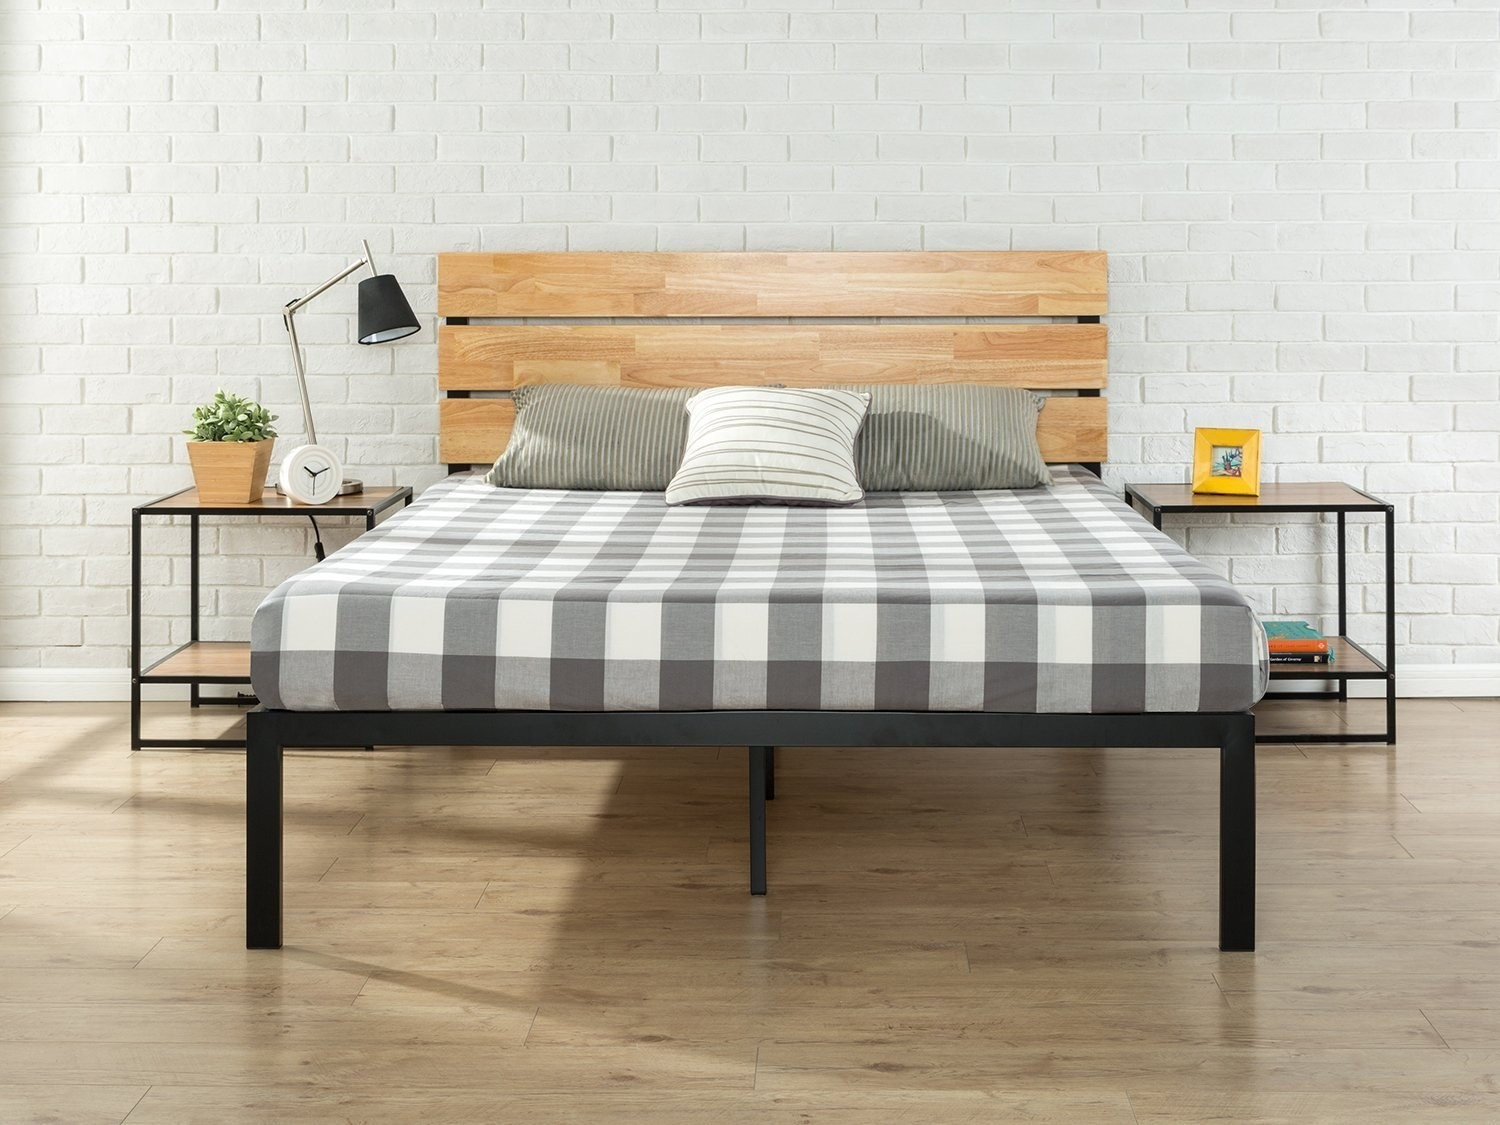 front view of the metal and wood bed frame